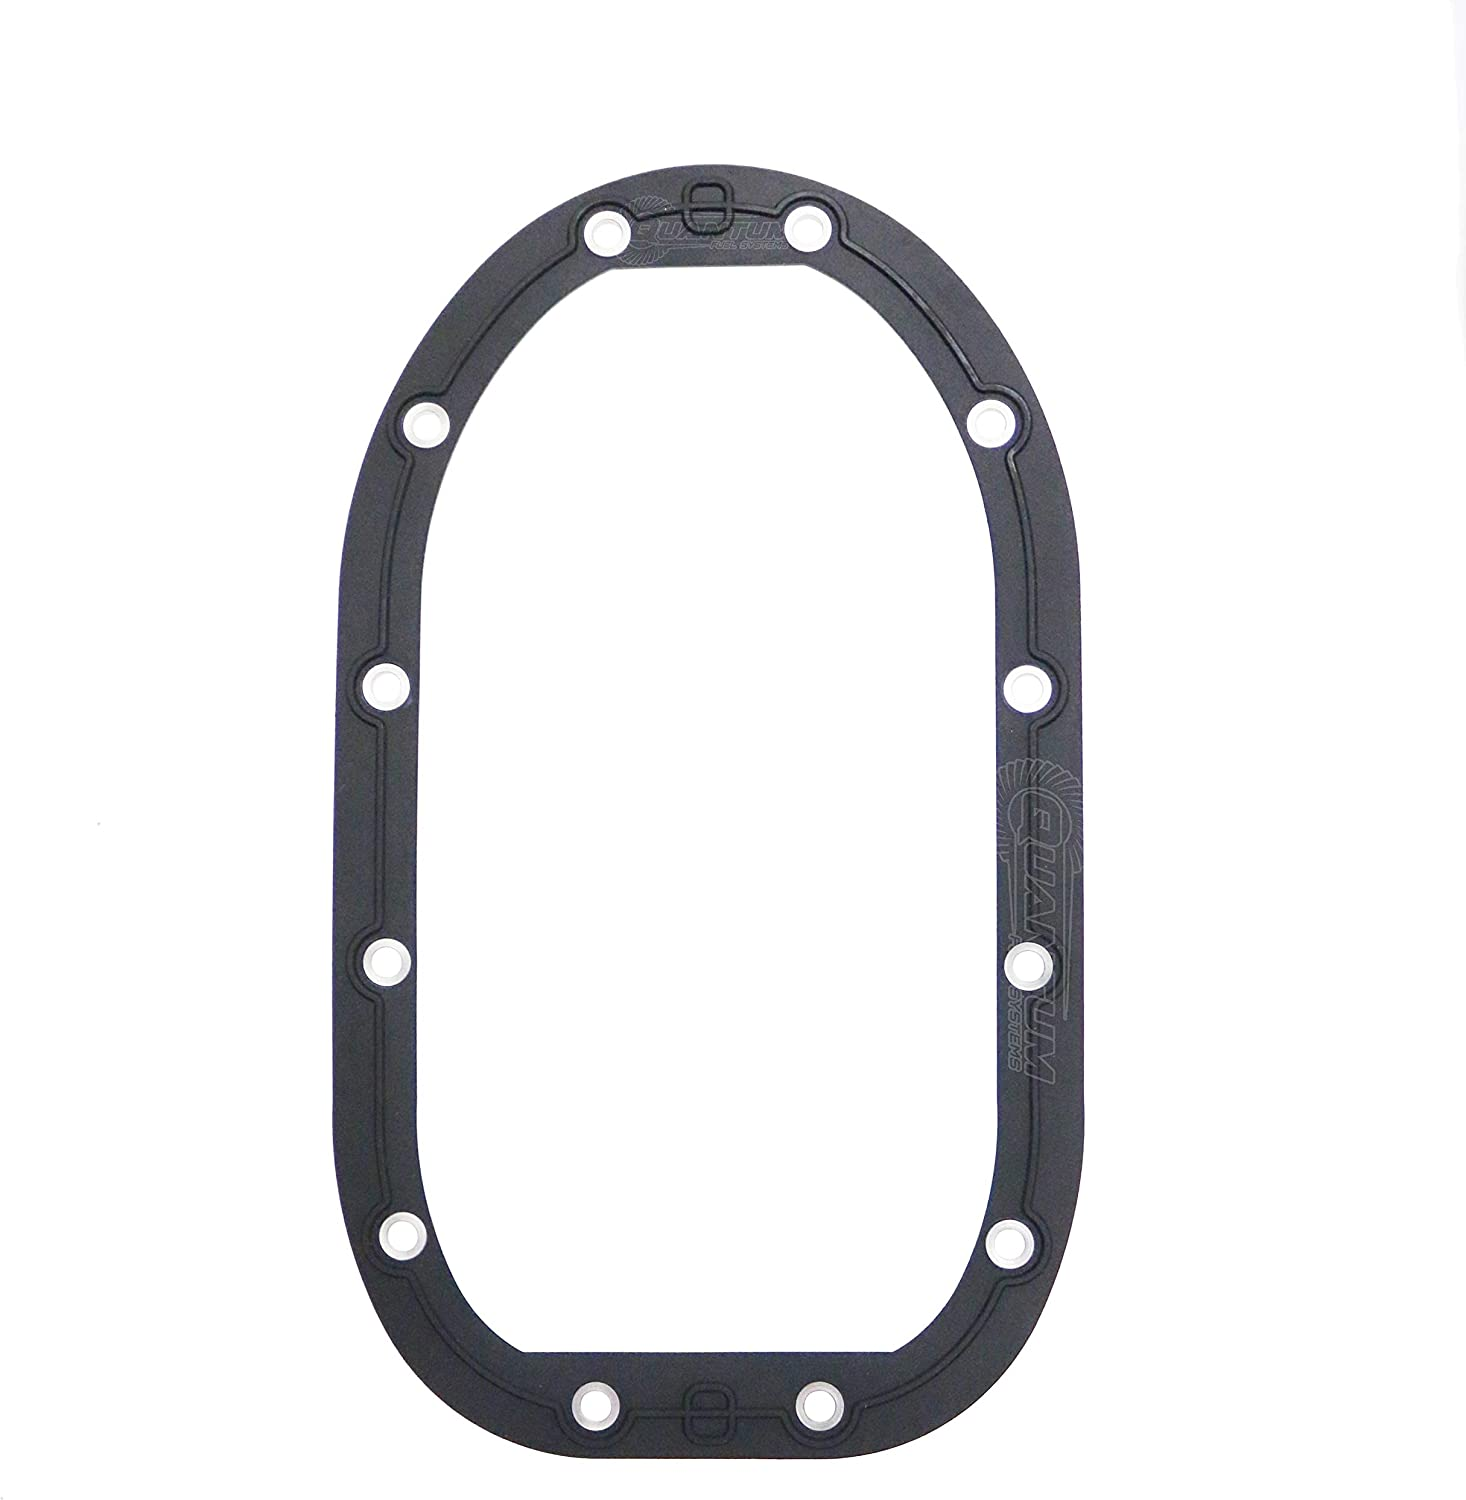 2004-2019 FXDL I S FXDB I A FLD HFP-TS7 Motorcycle Fuel Tank Seal Gasket Replacement for Harley-Davidson Dyna Low Rider//Dyna Street Bob//Dyana Switchback